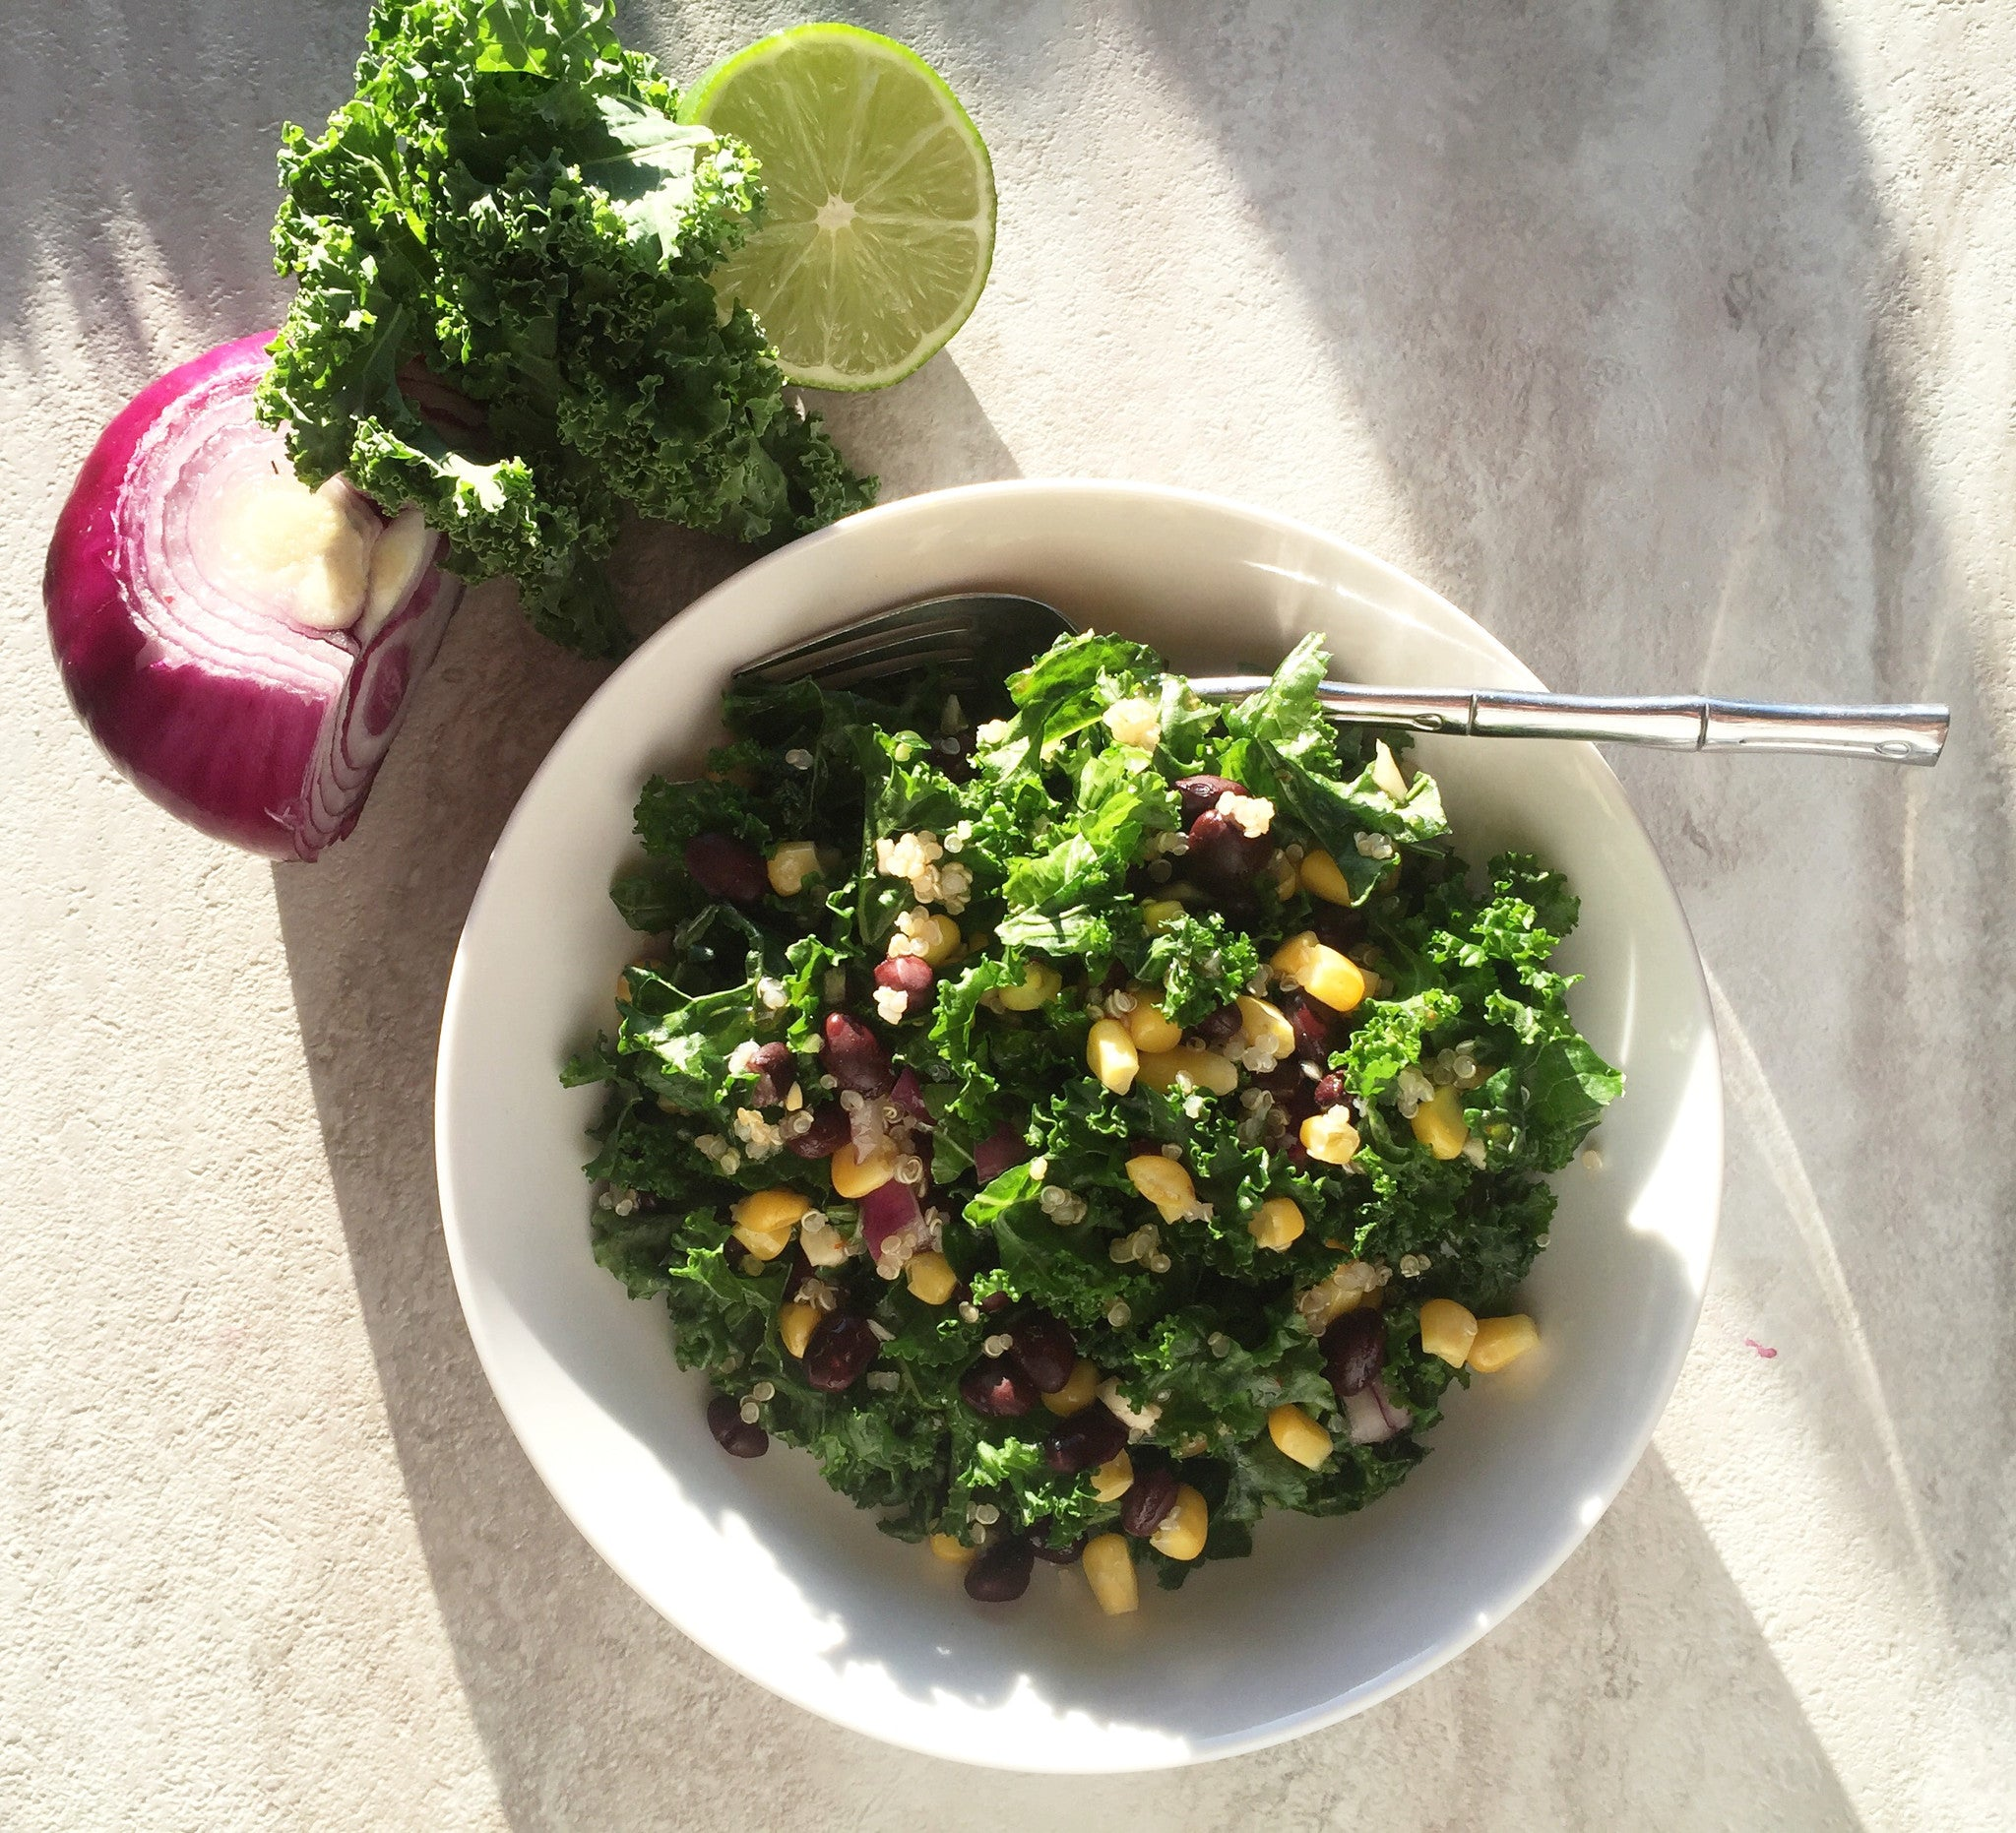 Spicy Kale and Black Bean Salad